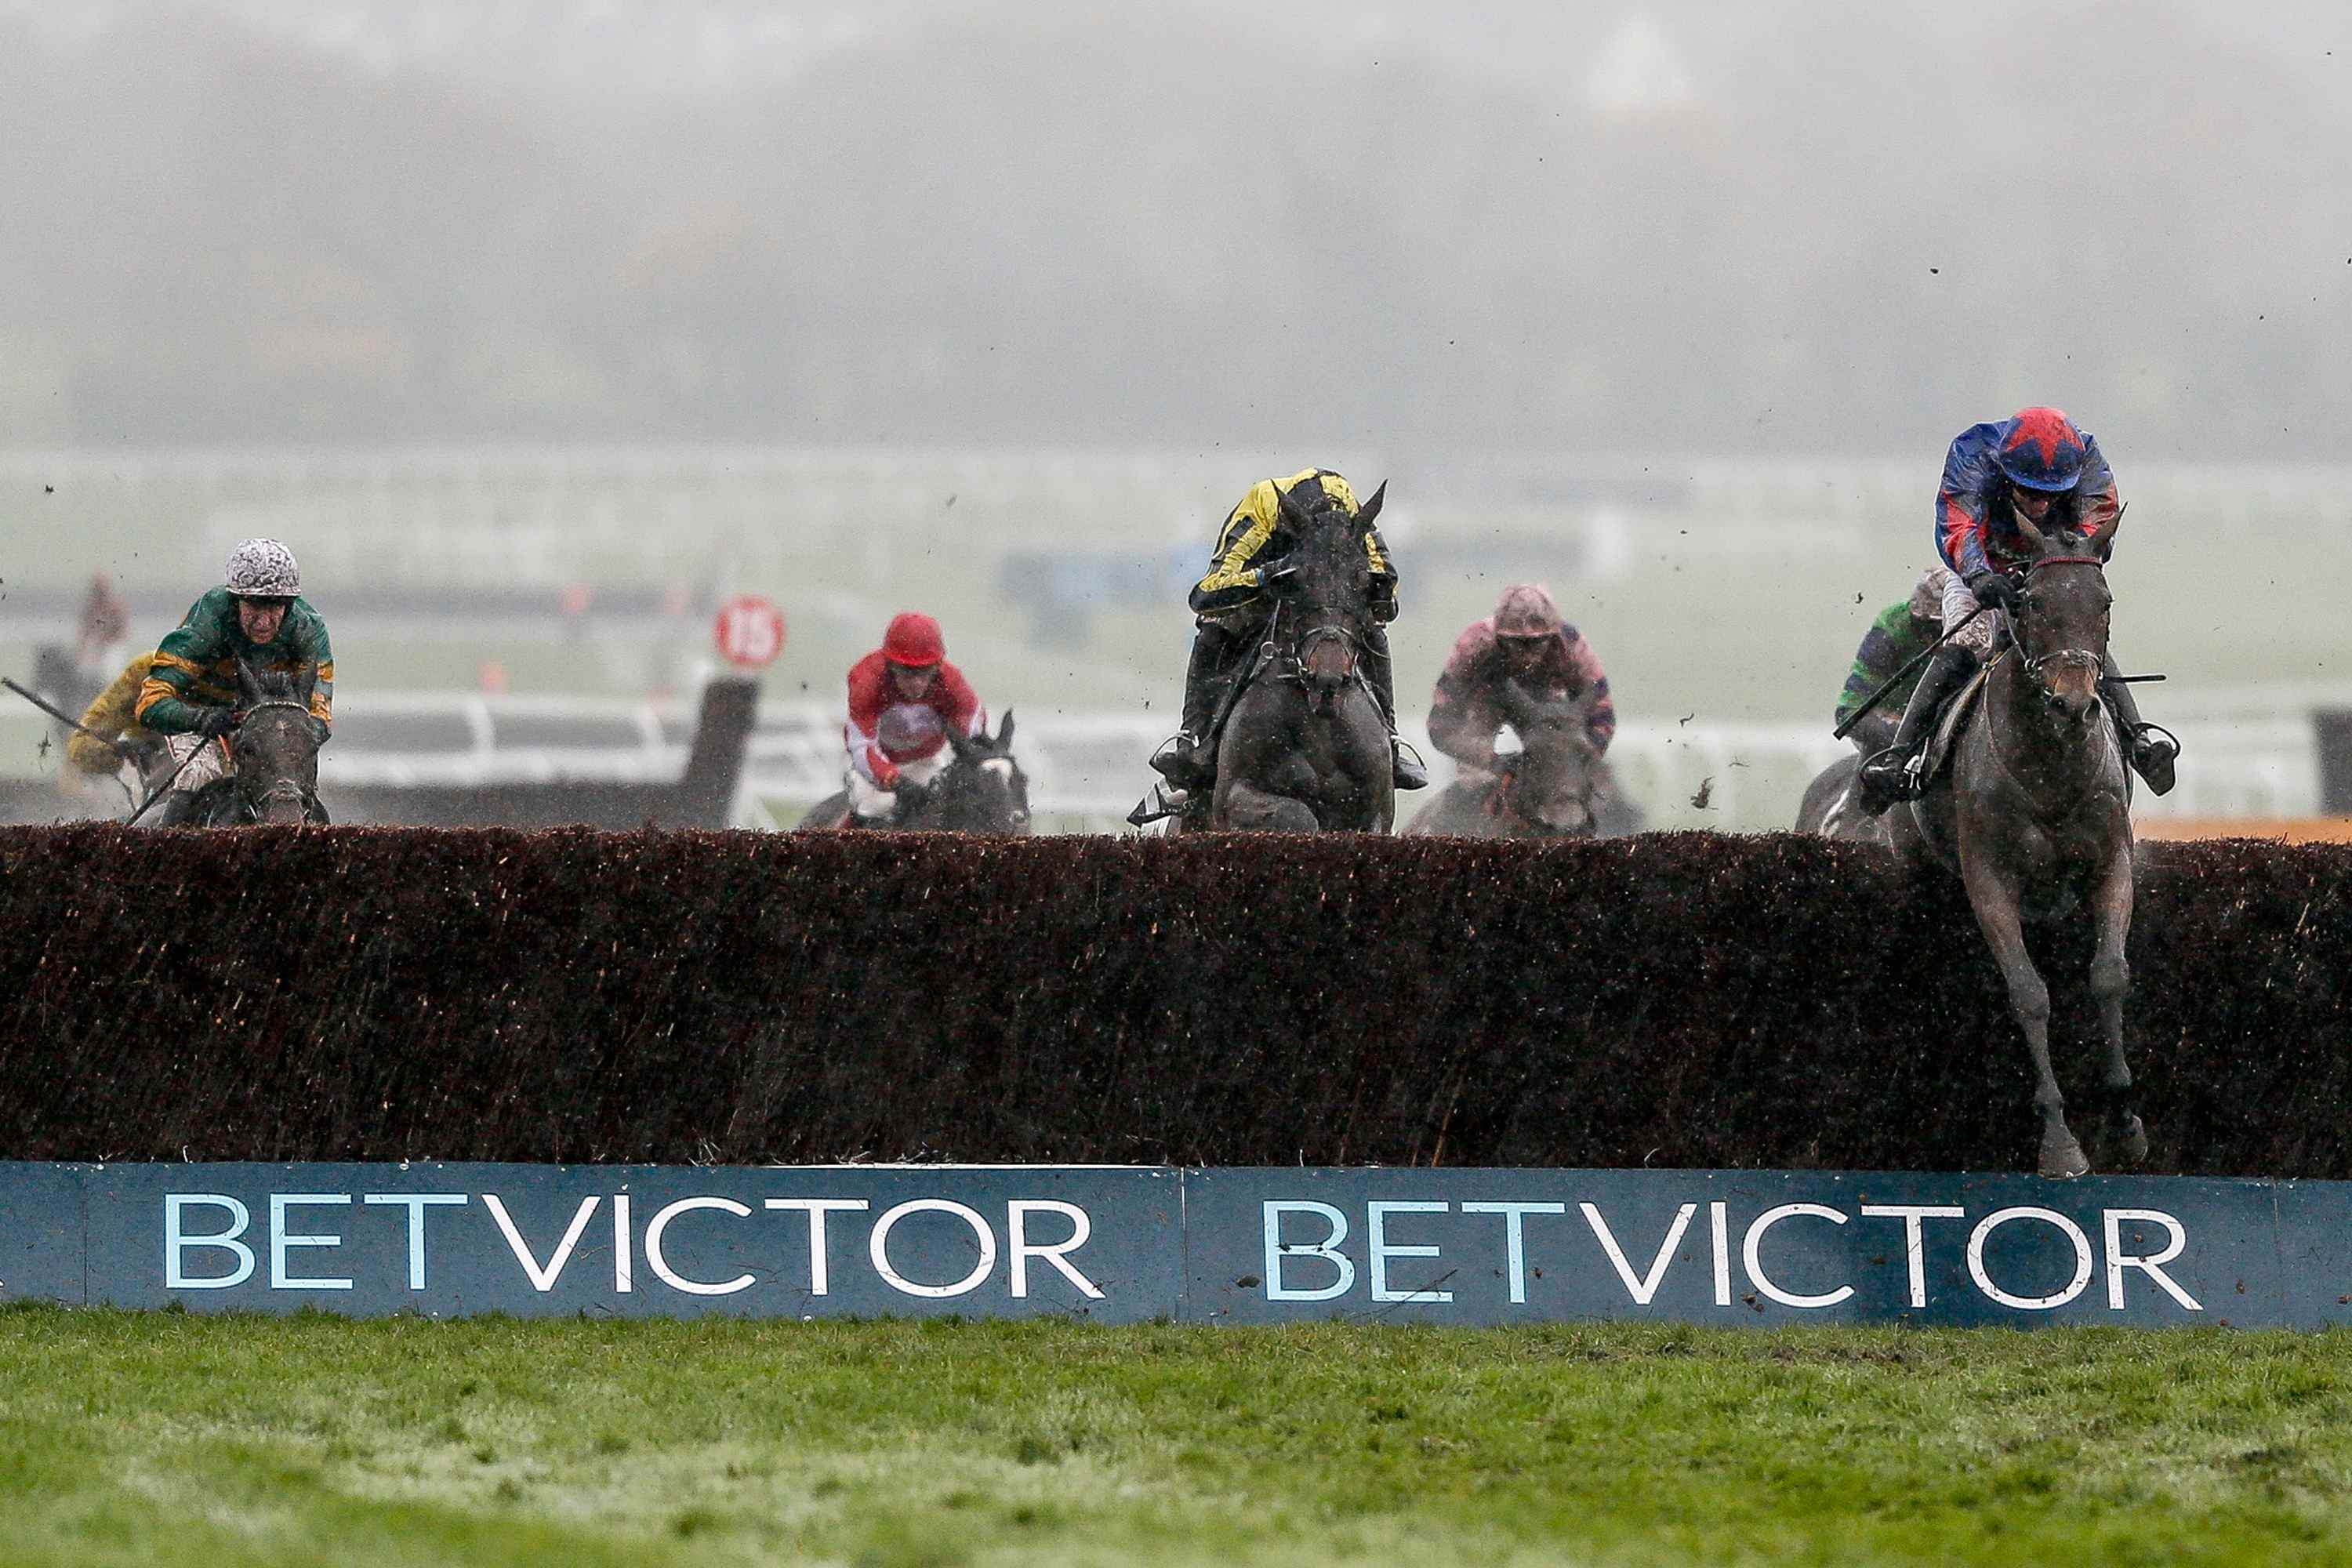 BetVictor Extends Sponsorship of English Horse Racing Event Cheltenham Gold Cup